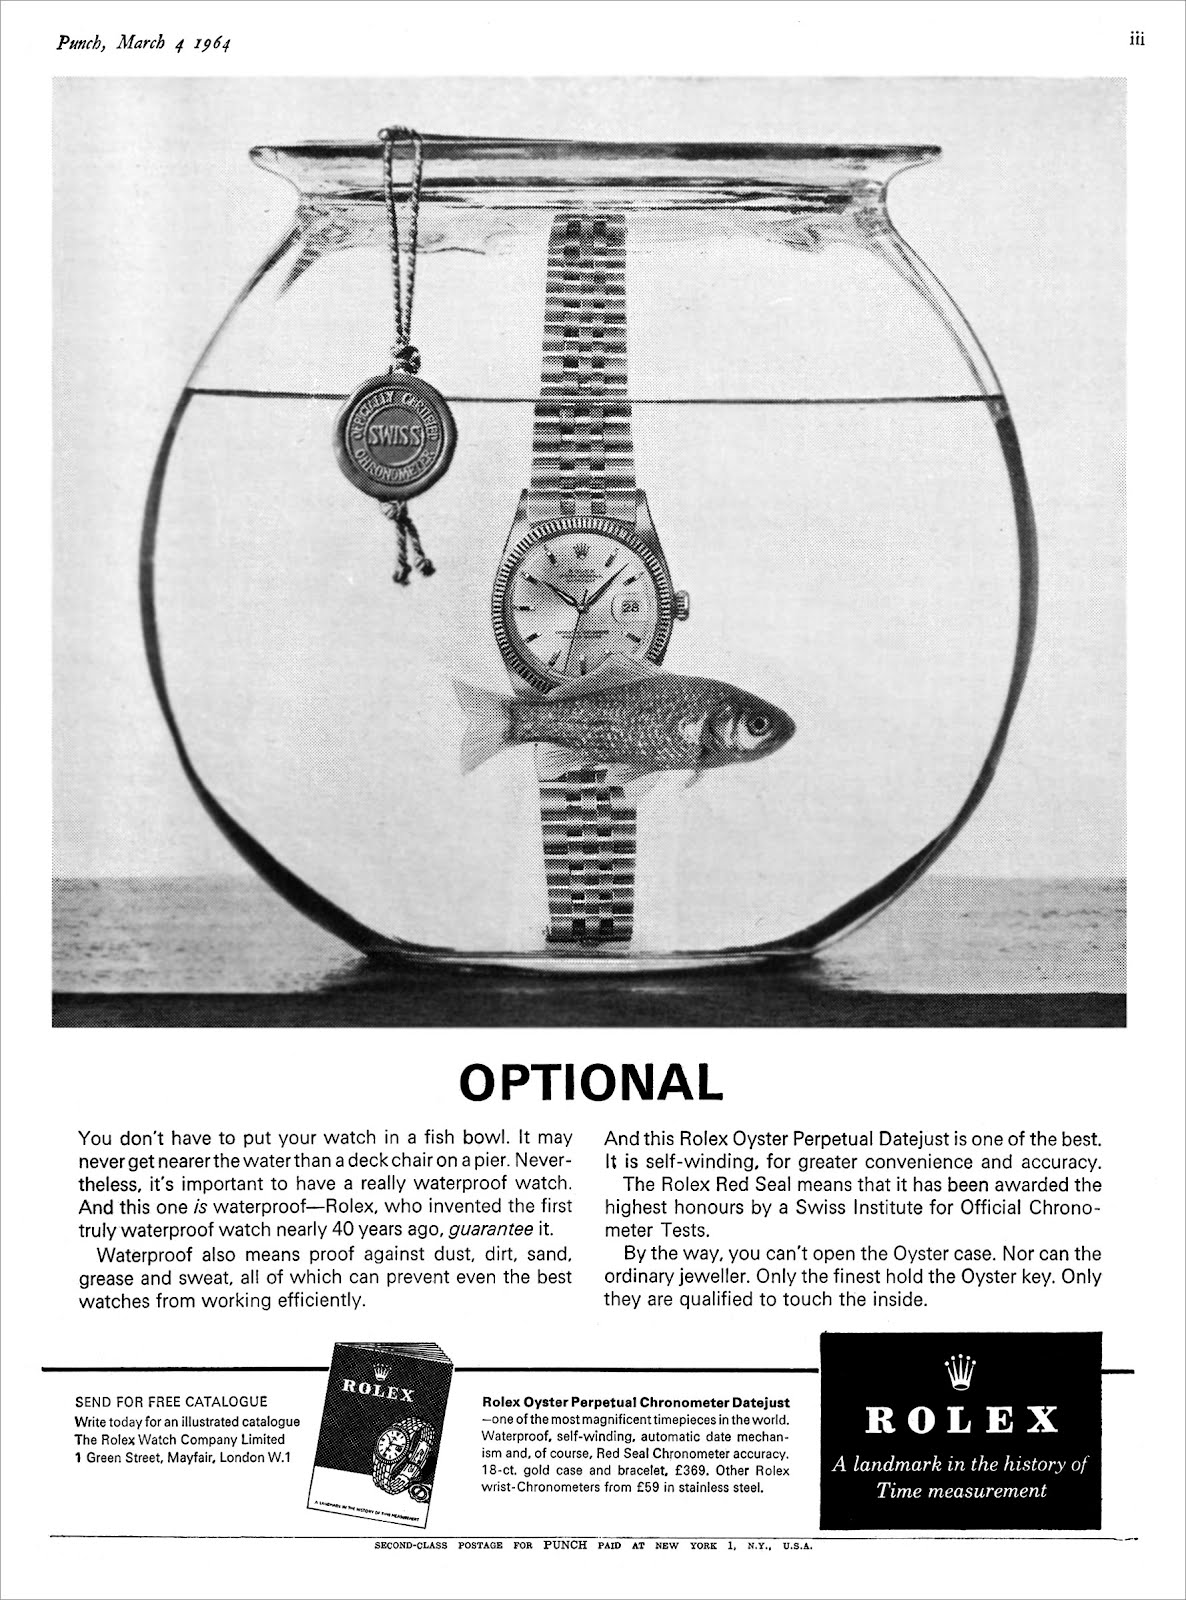 rolex-ad-1964-rolex-oyster-ad1